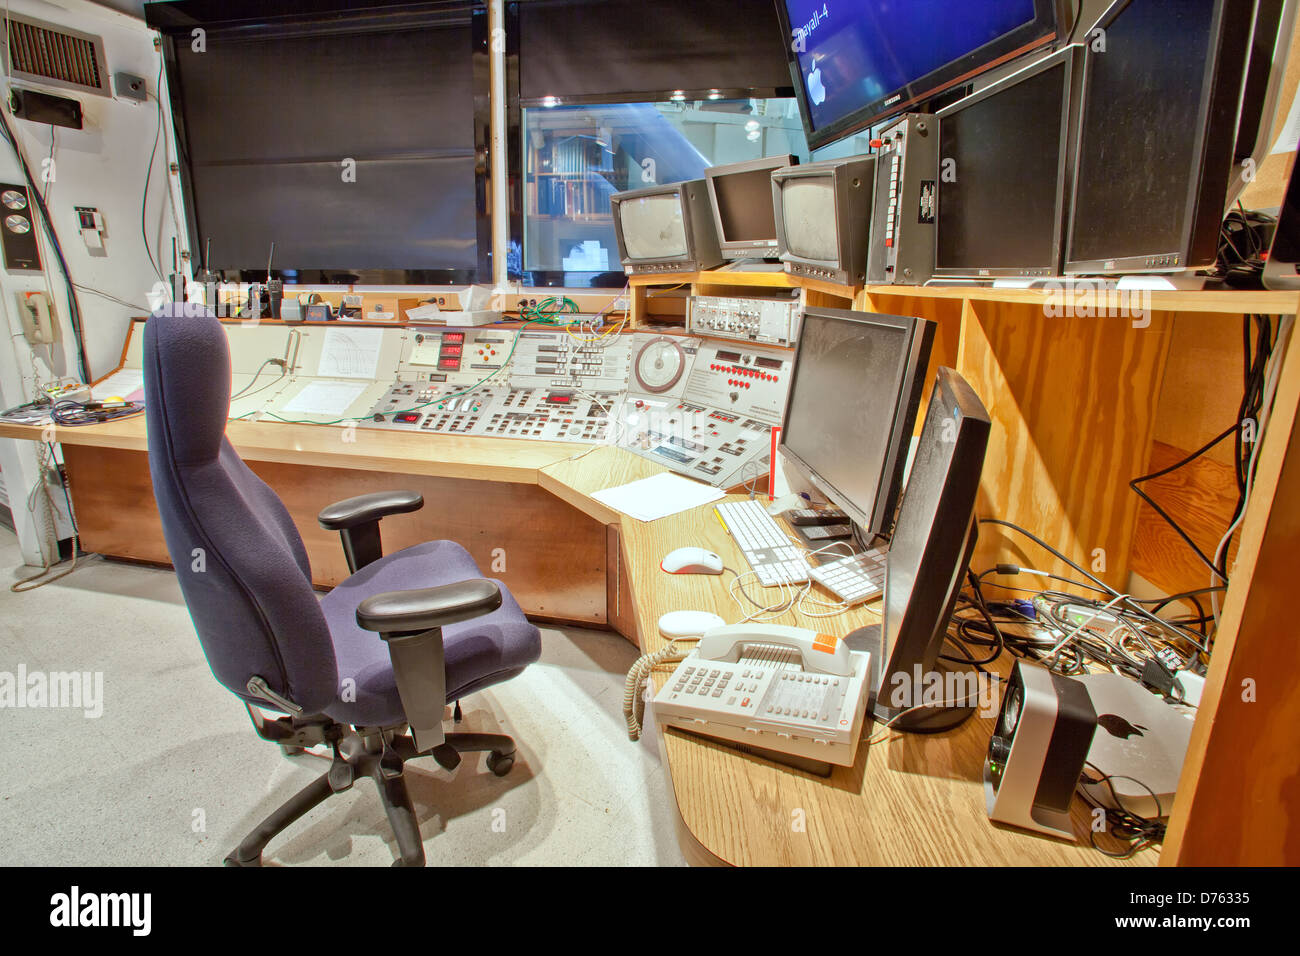 Control room, Mayall 4-Meter optical telescope. - Stock Image